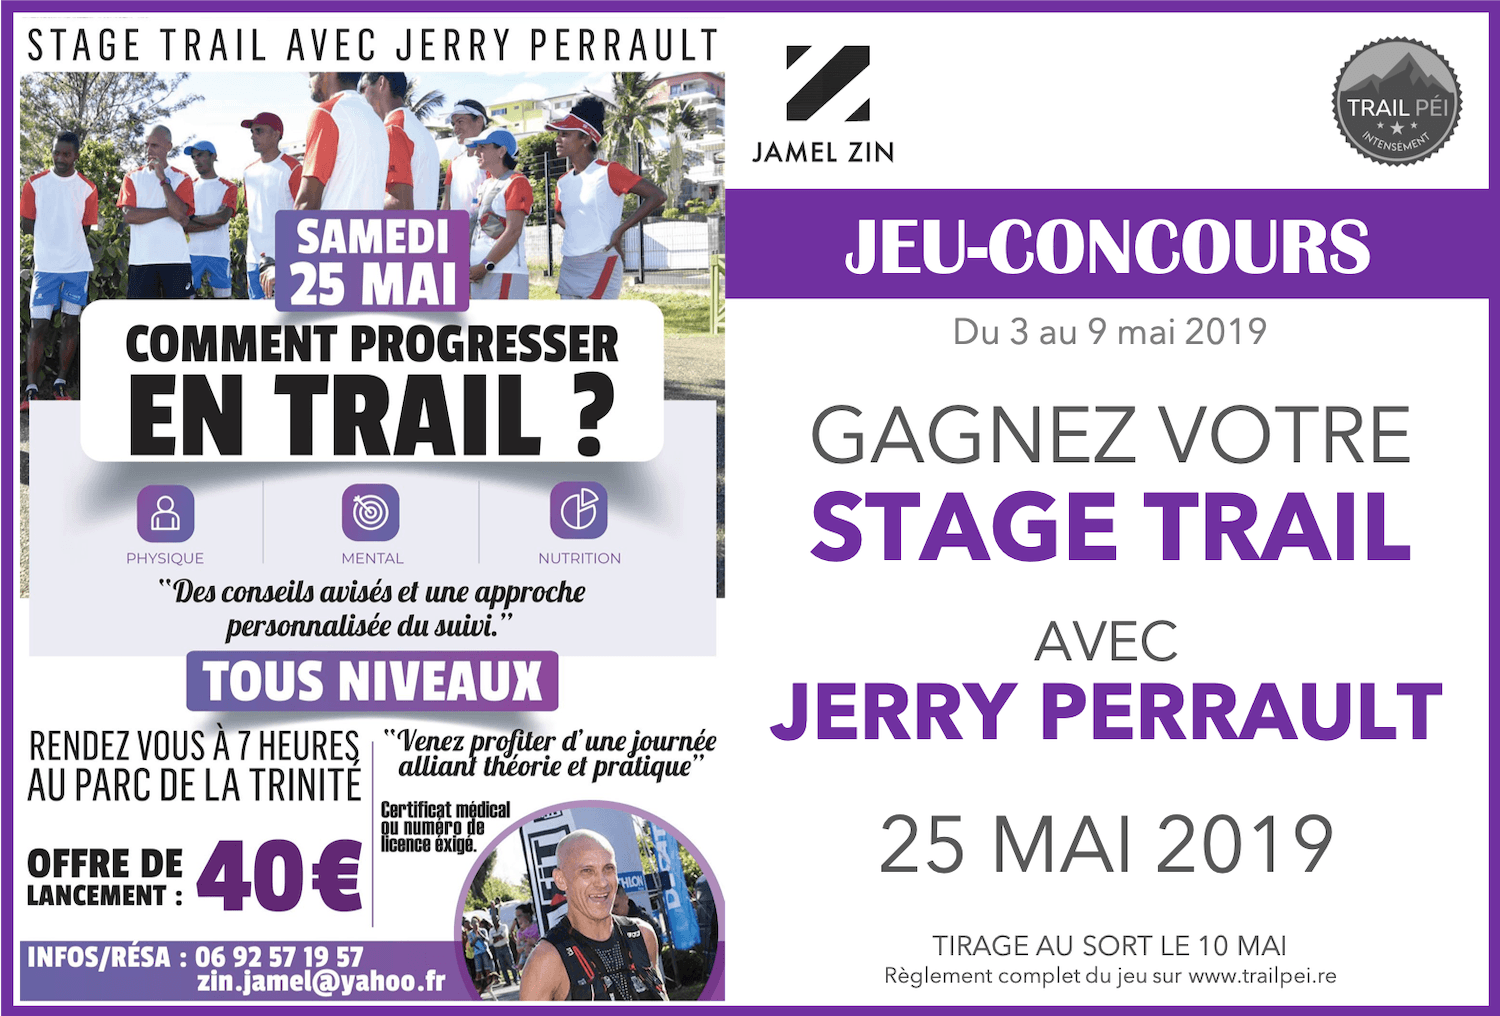 Affiche-Jeu-concours-Stage-Trail-Jerry-Perrault